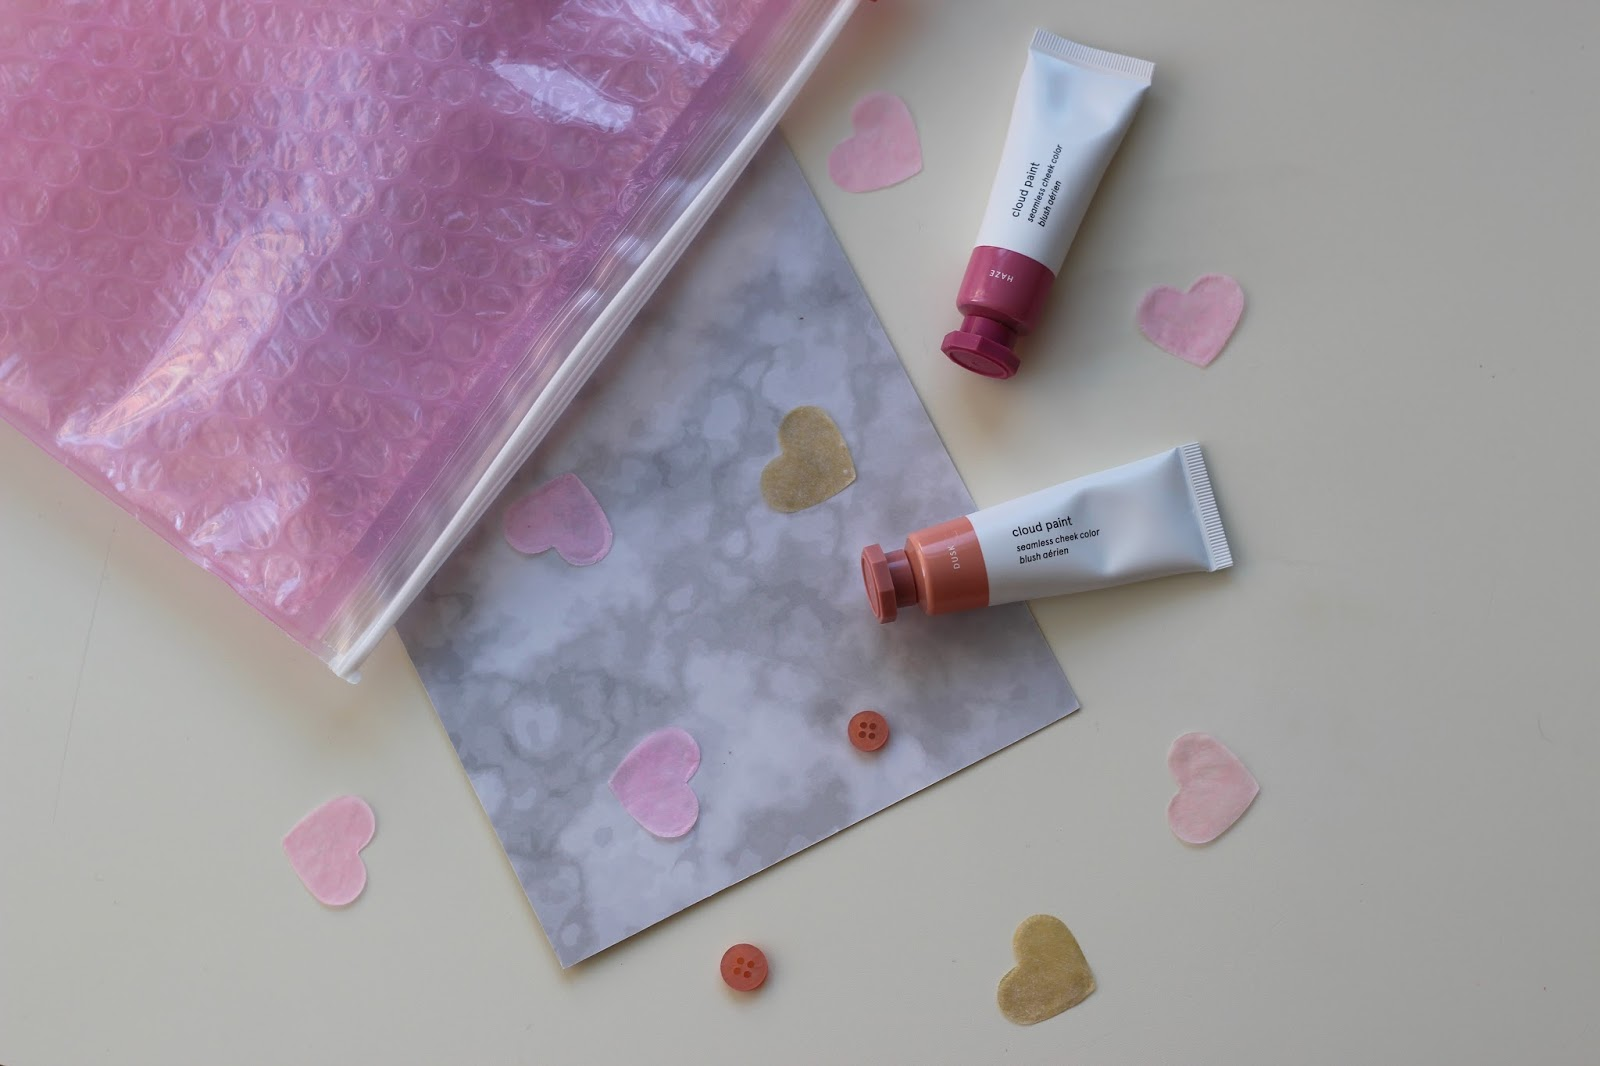 On Cloud Nine With Glossier Cloud Paint